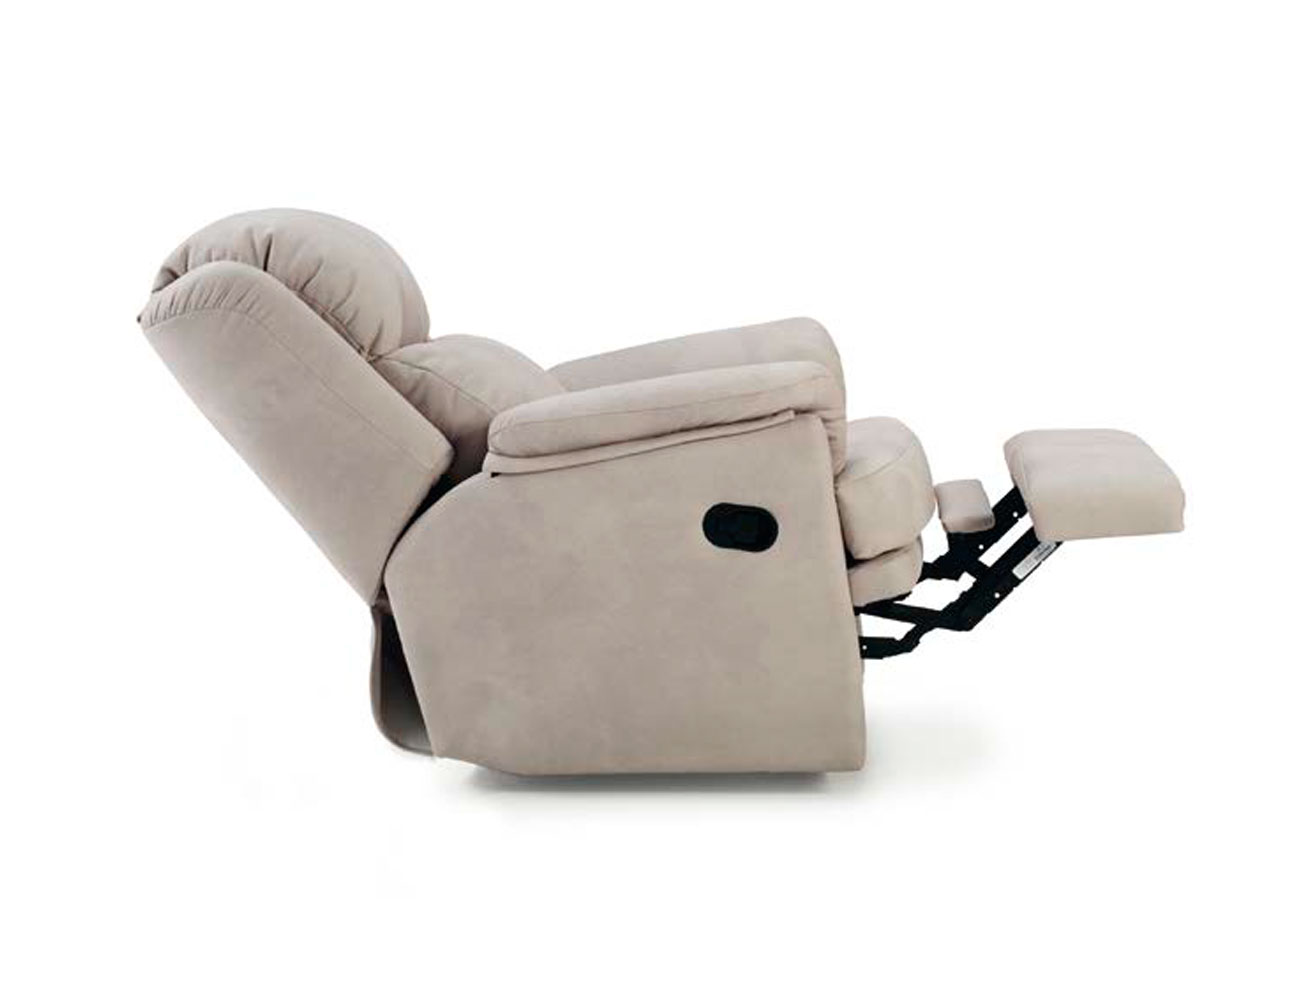 Sillon relax manual palanca esther 113